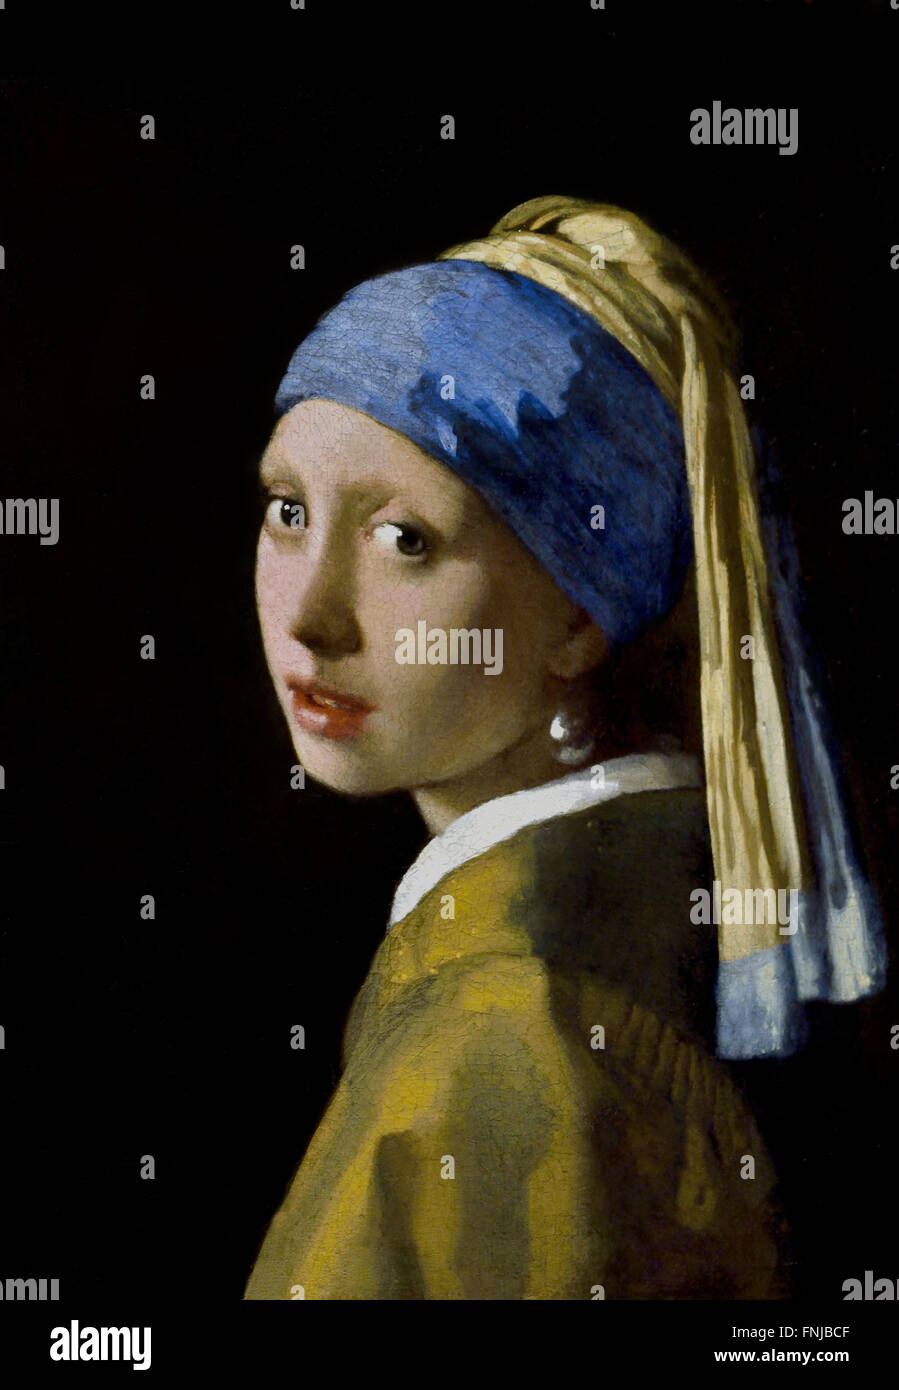 m dchen mit perlenohrring 1665 johannes vermeer oder jan vermeer 1632 1675 niederlande. Black Bedroom Furniture Sets. Home Design Ideas